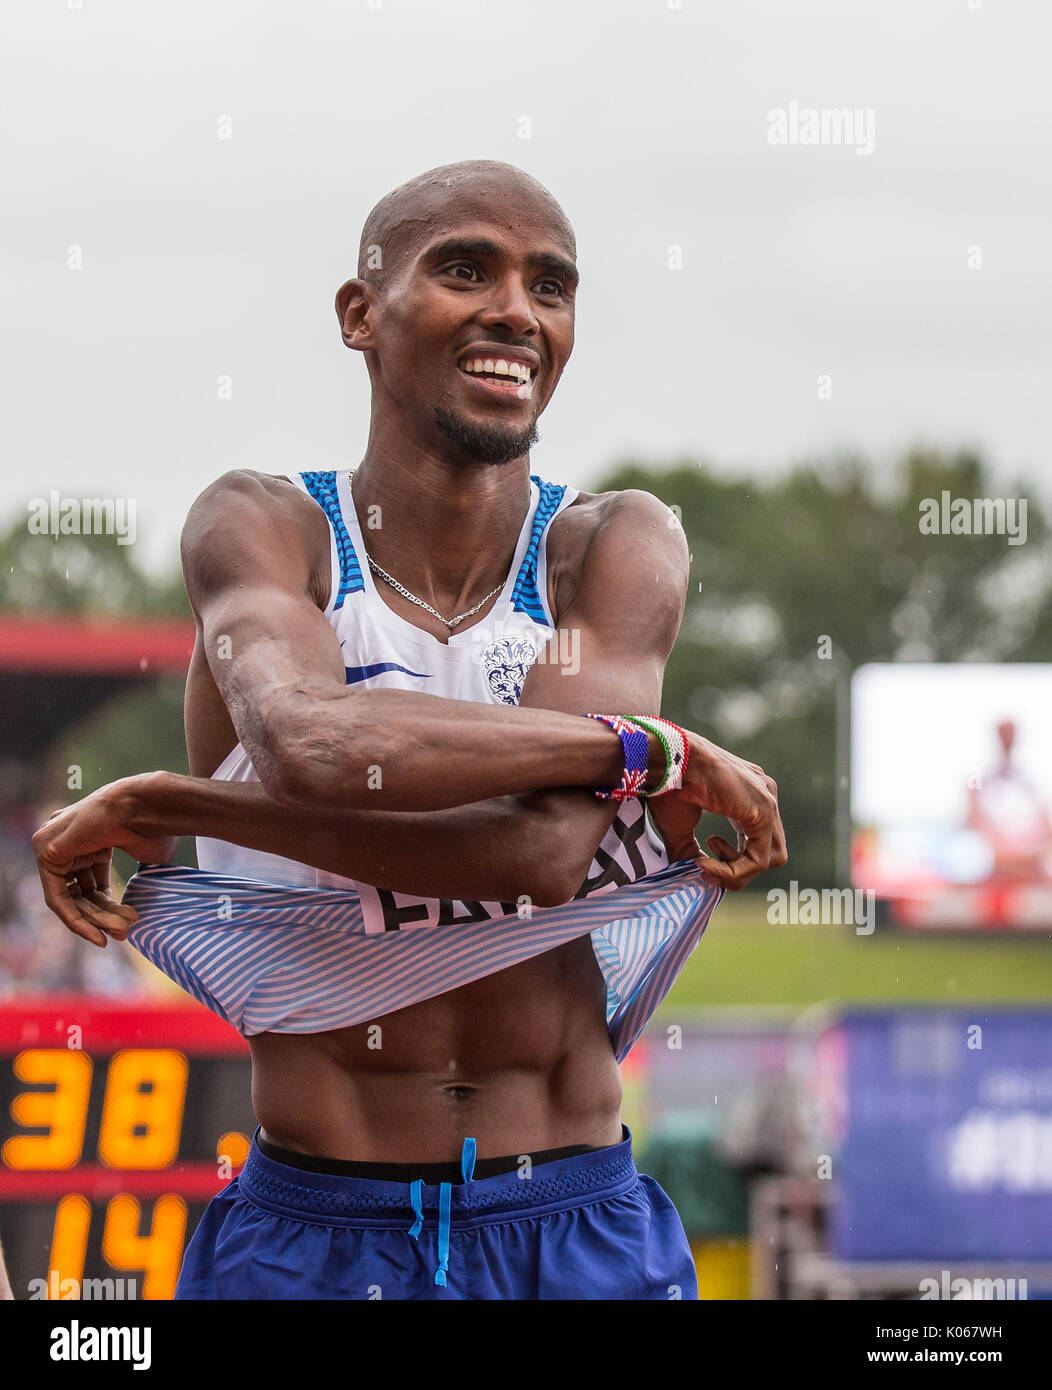 Birmingham, UK. 20th Aug, 2017. Mo FARAH of GBR takes off his shirt to hand to a fellow Brit as his says he is unlikely to race in a Great Britain shirt again during the Muller Grand Prix Birmingham Athletics at Alexandra Stadium, Birmingham, England on 20 August 2017. Photo by Andy Rowland. Credit: Andrew Rowland/Alamy Live News - Stock Image